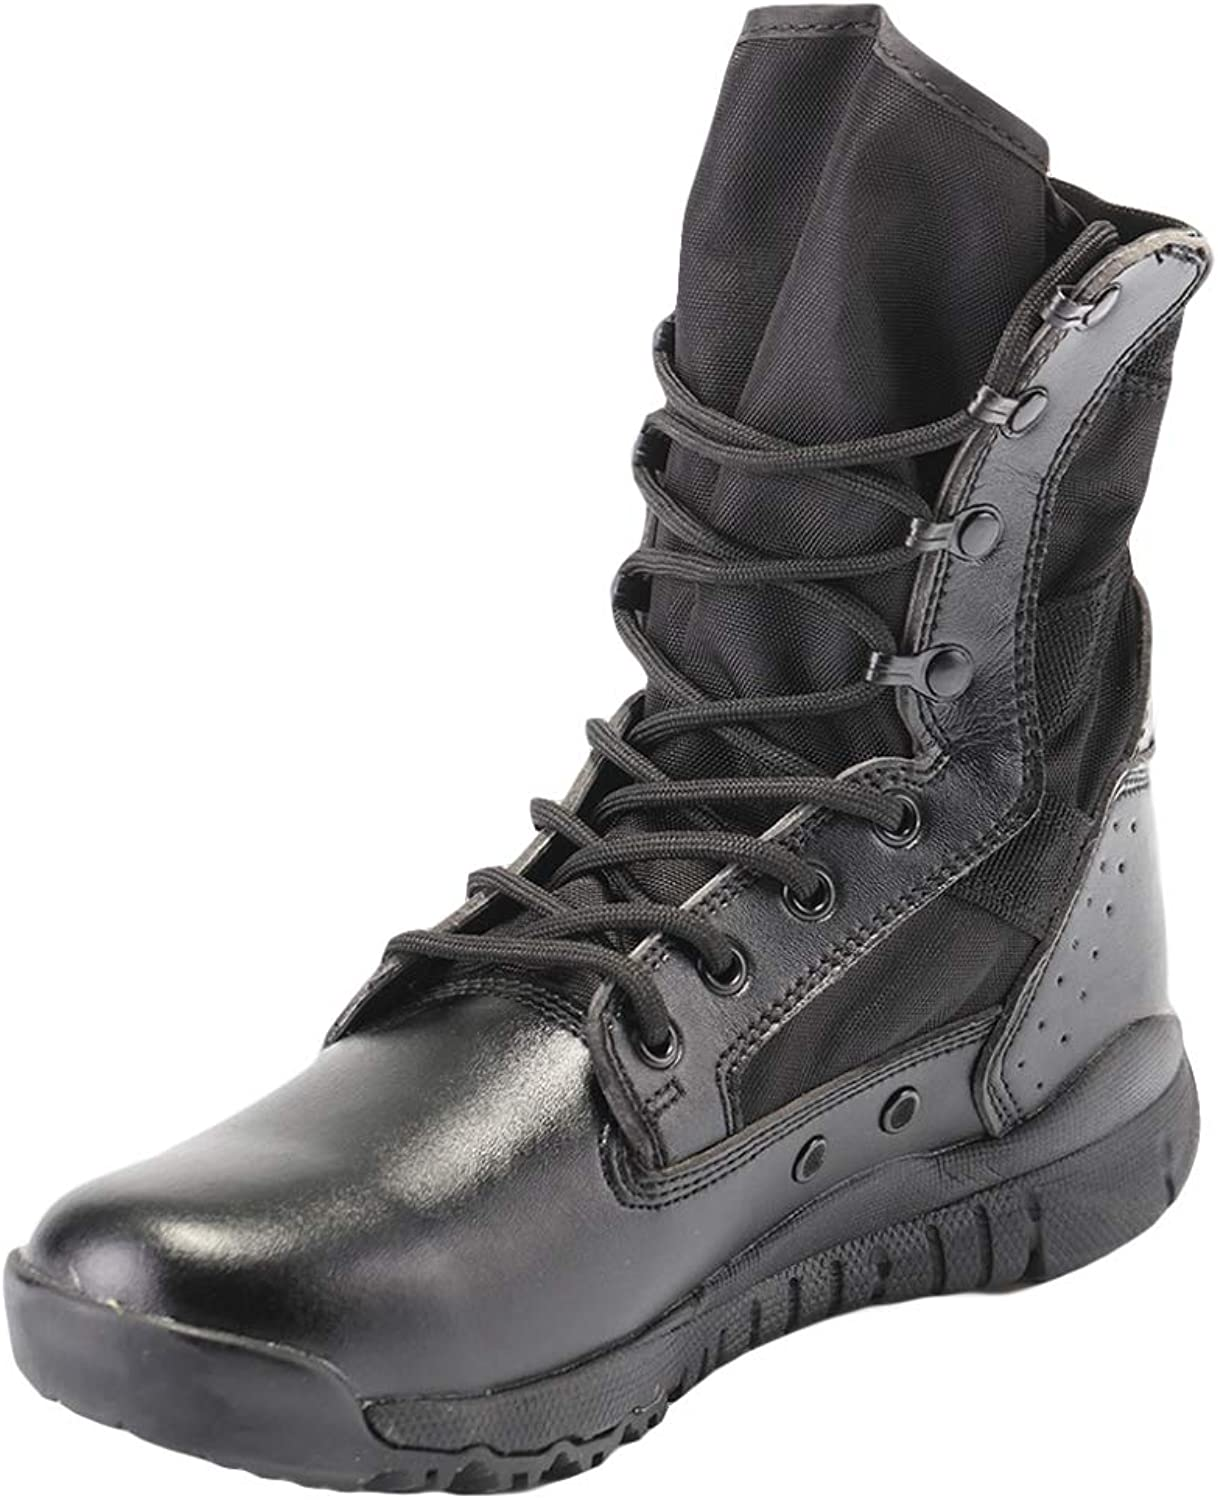 Boots Men's Martin Boots High-top Chukka Desert Combat shoes Snow Boots Hiking Work Boots Lace-up Boots